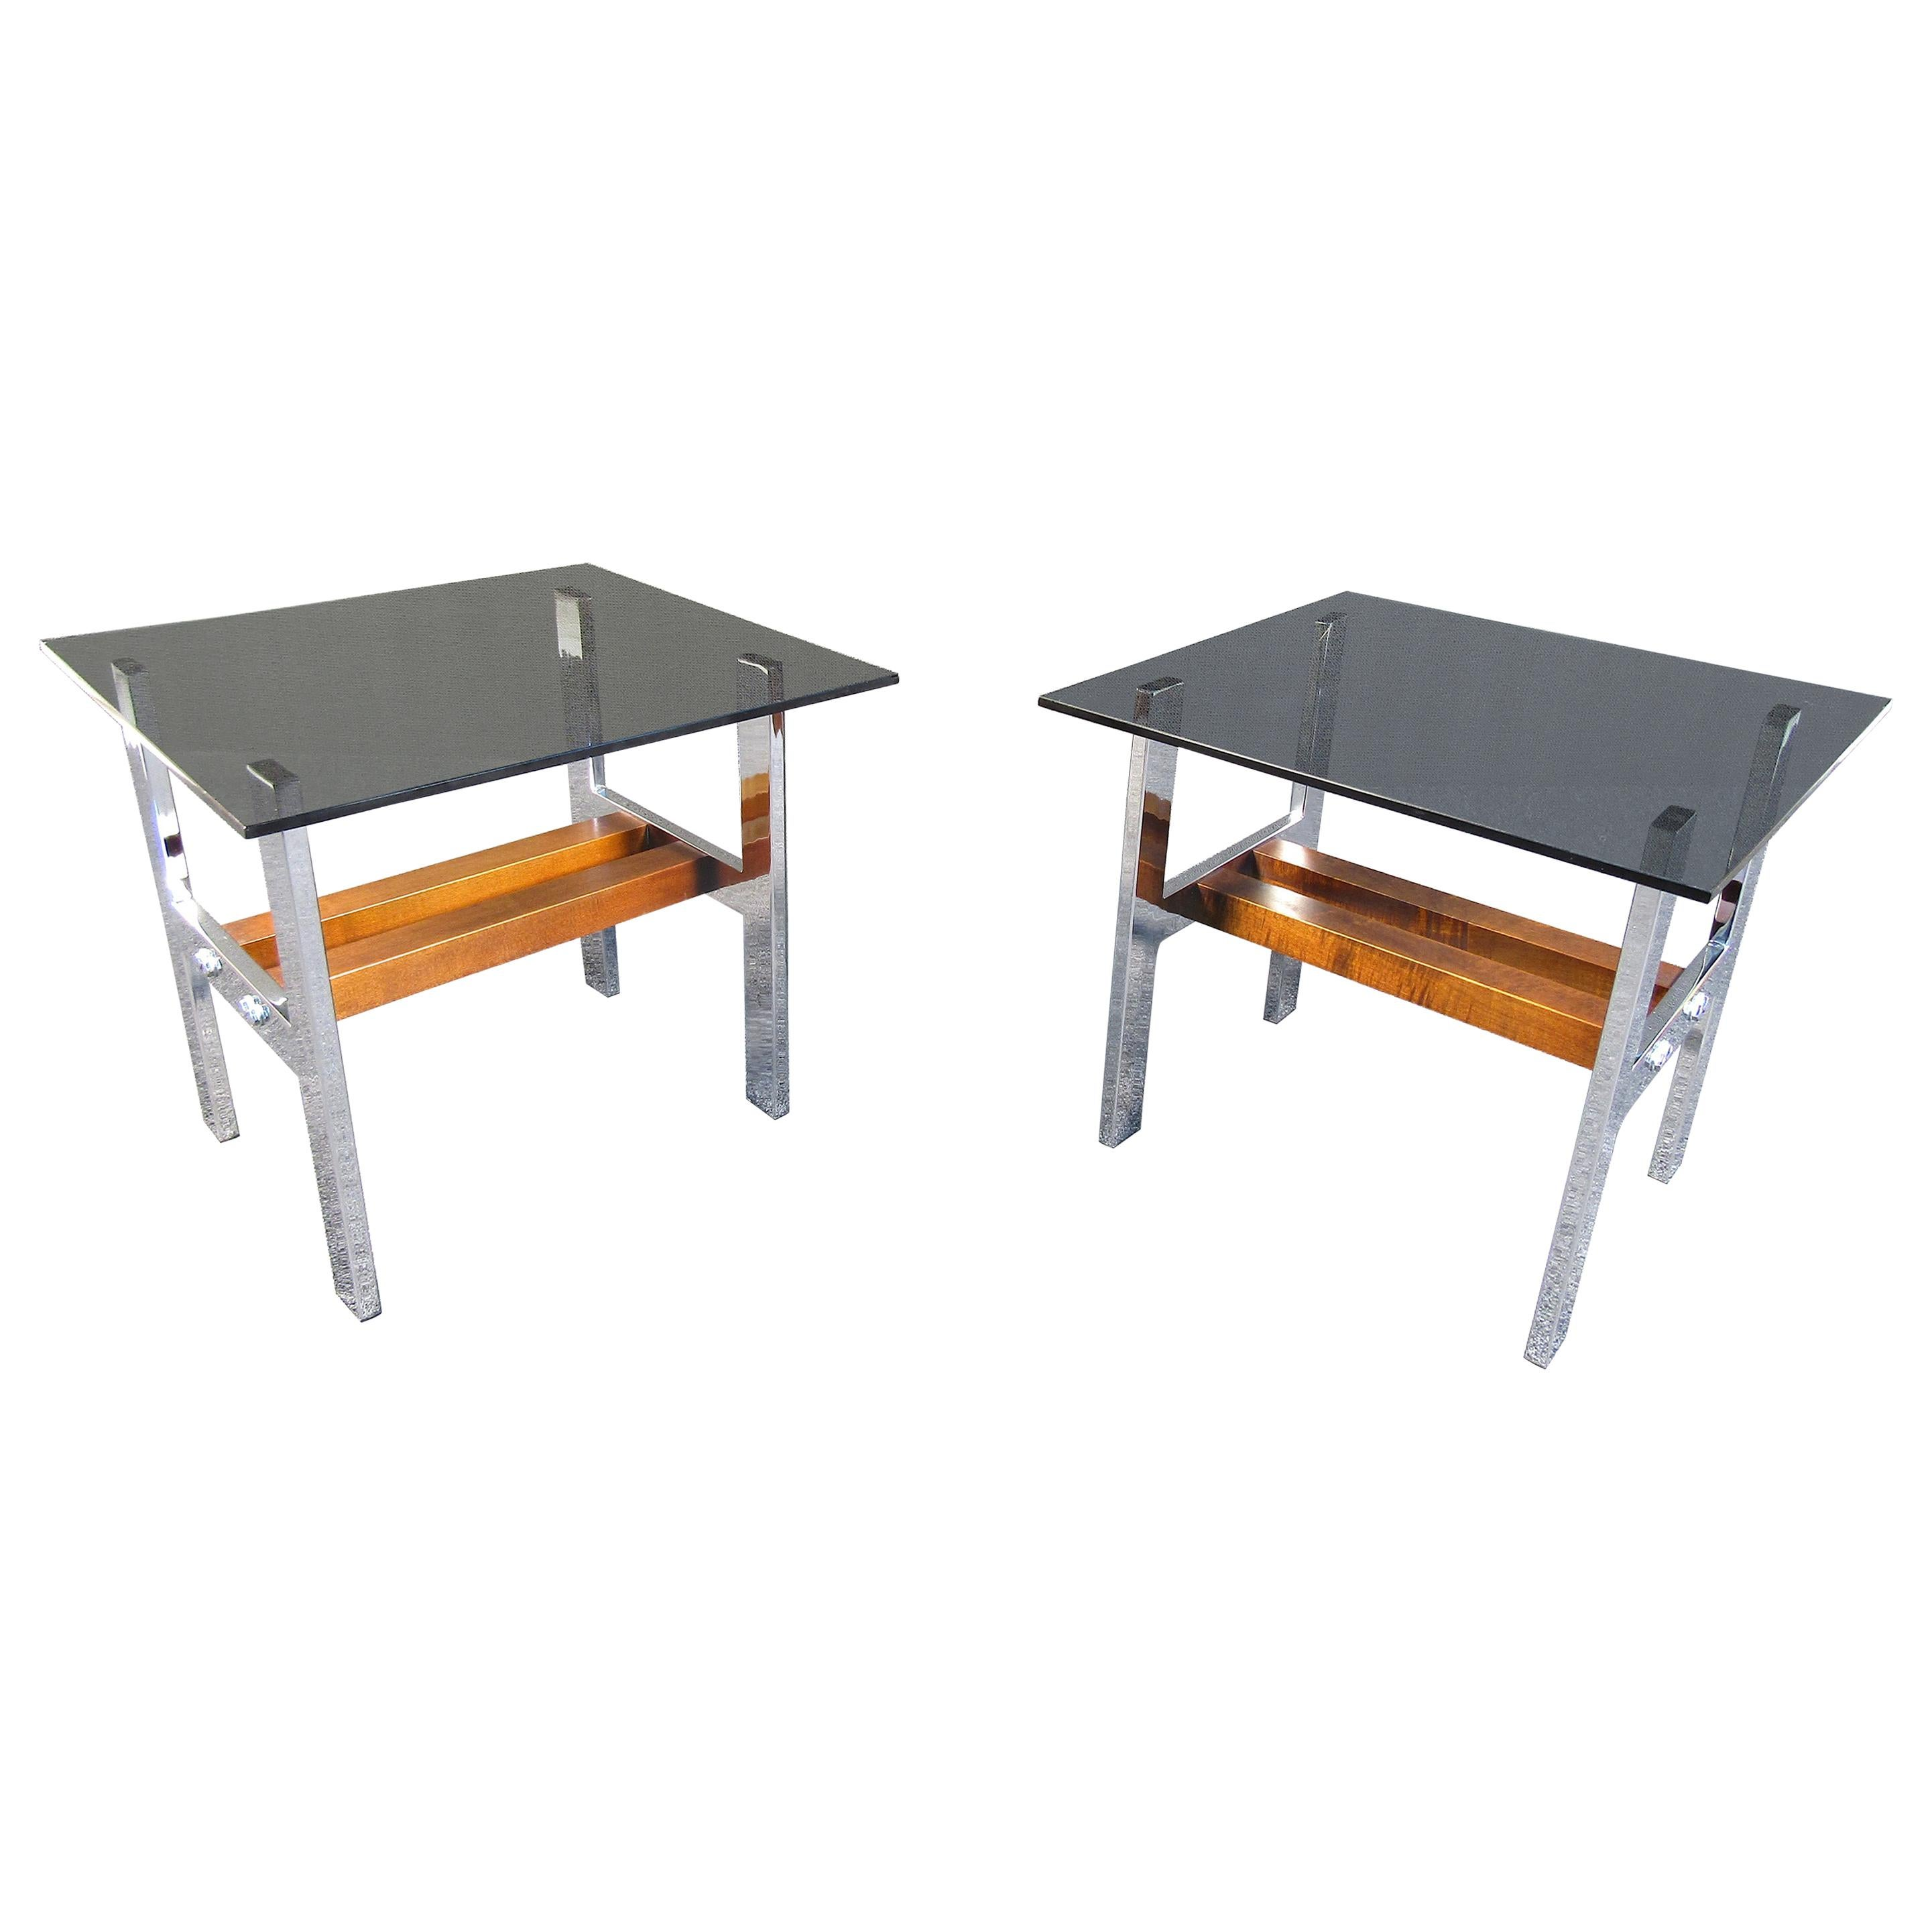 Pair of Midcentury Smoked Glass and Chrome Coffee Tables